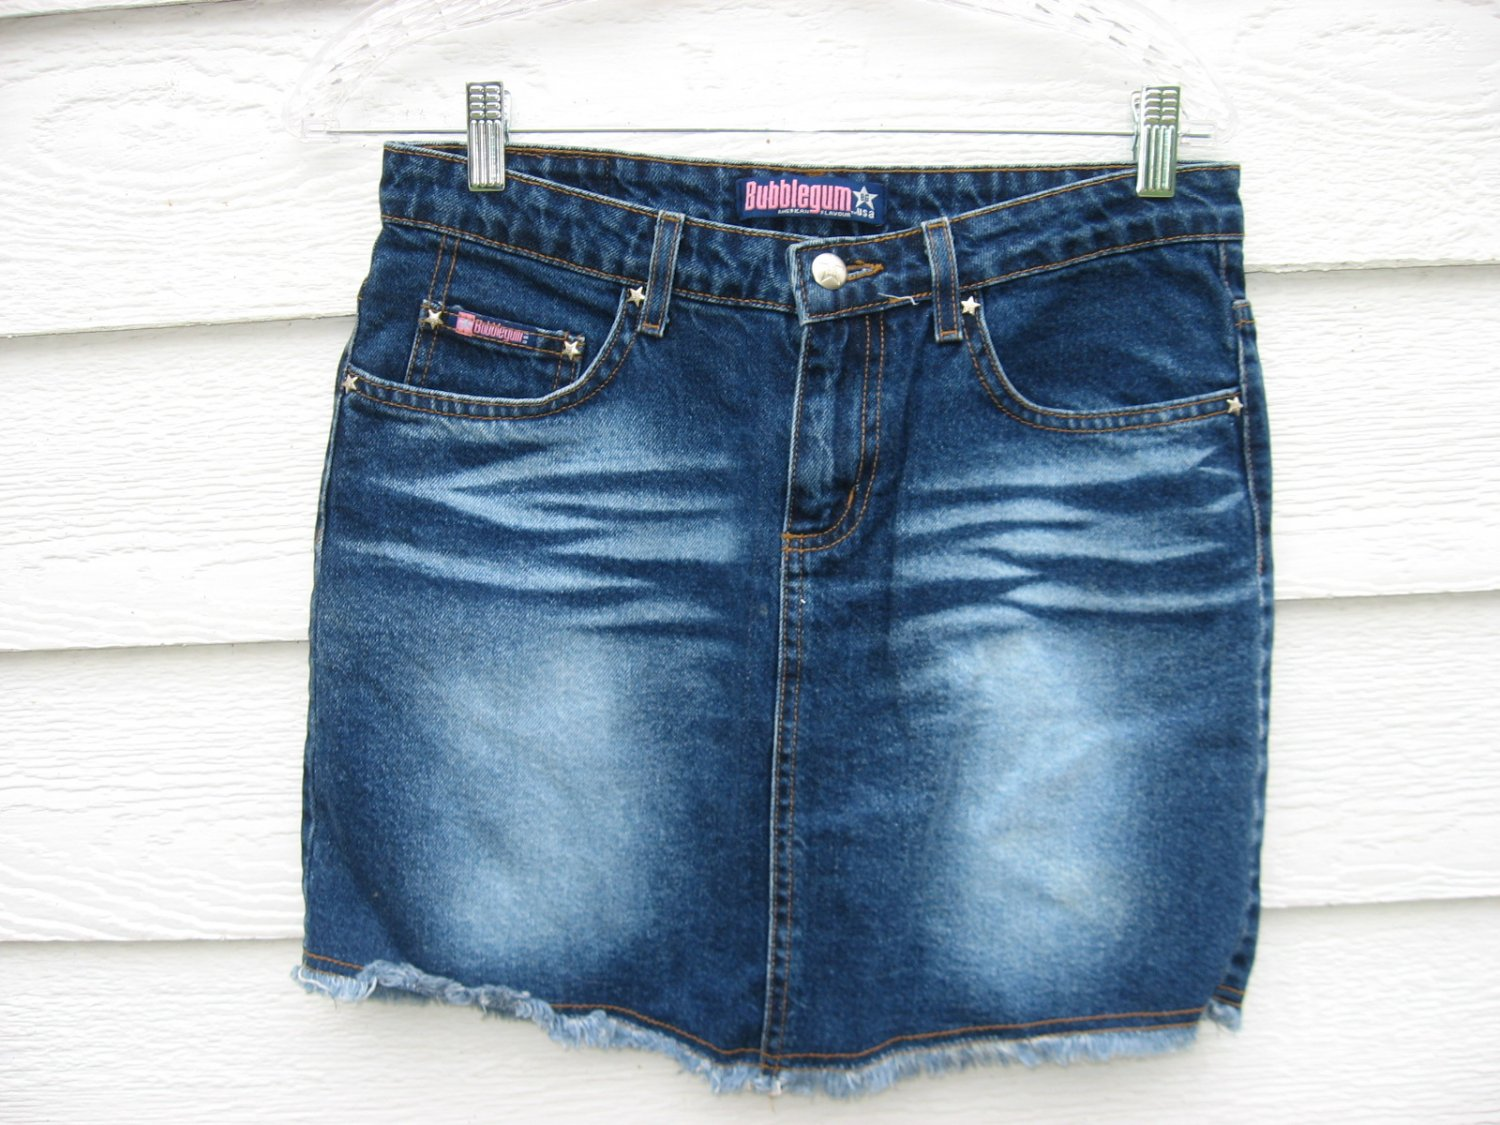 Bubblegum Jean Skirt 7/8 31 Waist Blue Denim EUC Mini